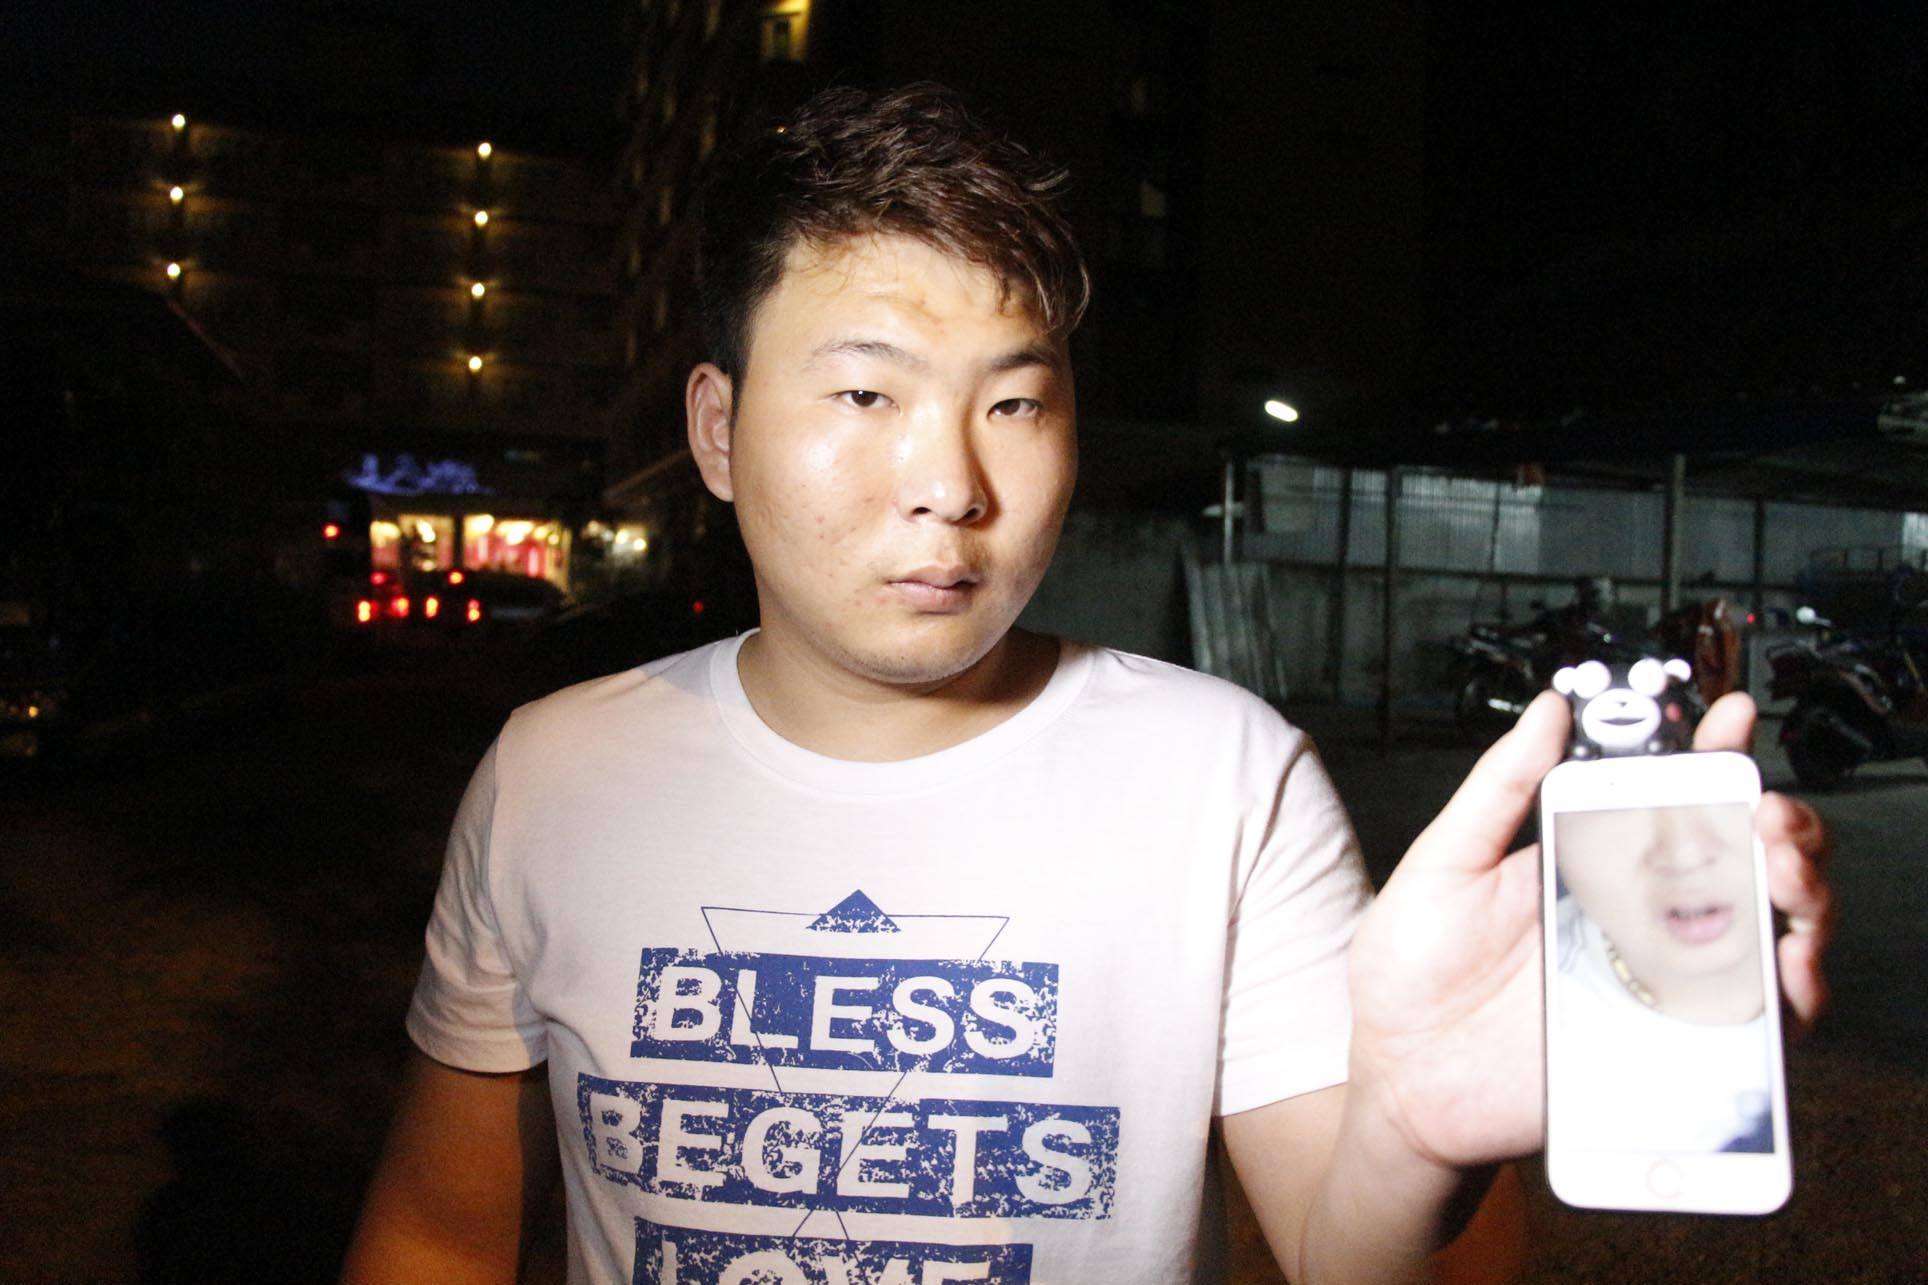 Sun Biao shows a photo of him wearing a gold chain he said was snatched by a ride by motorcycle thief.